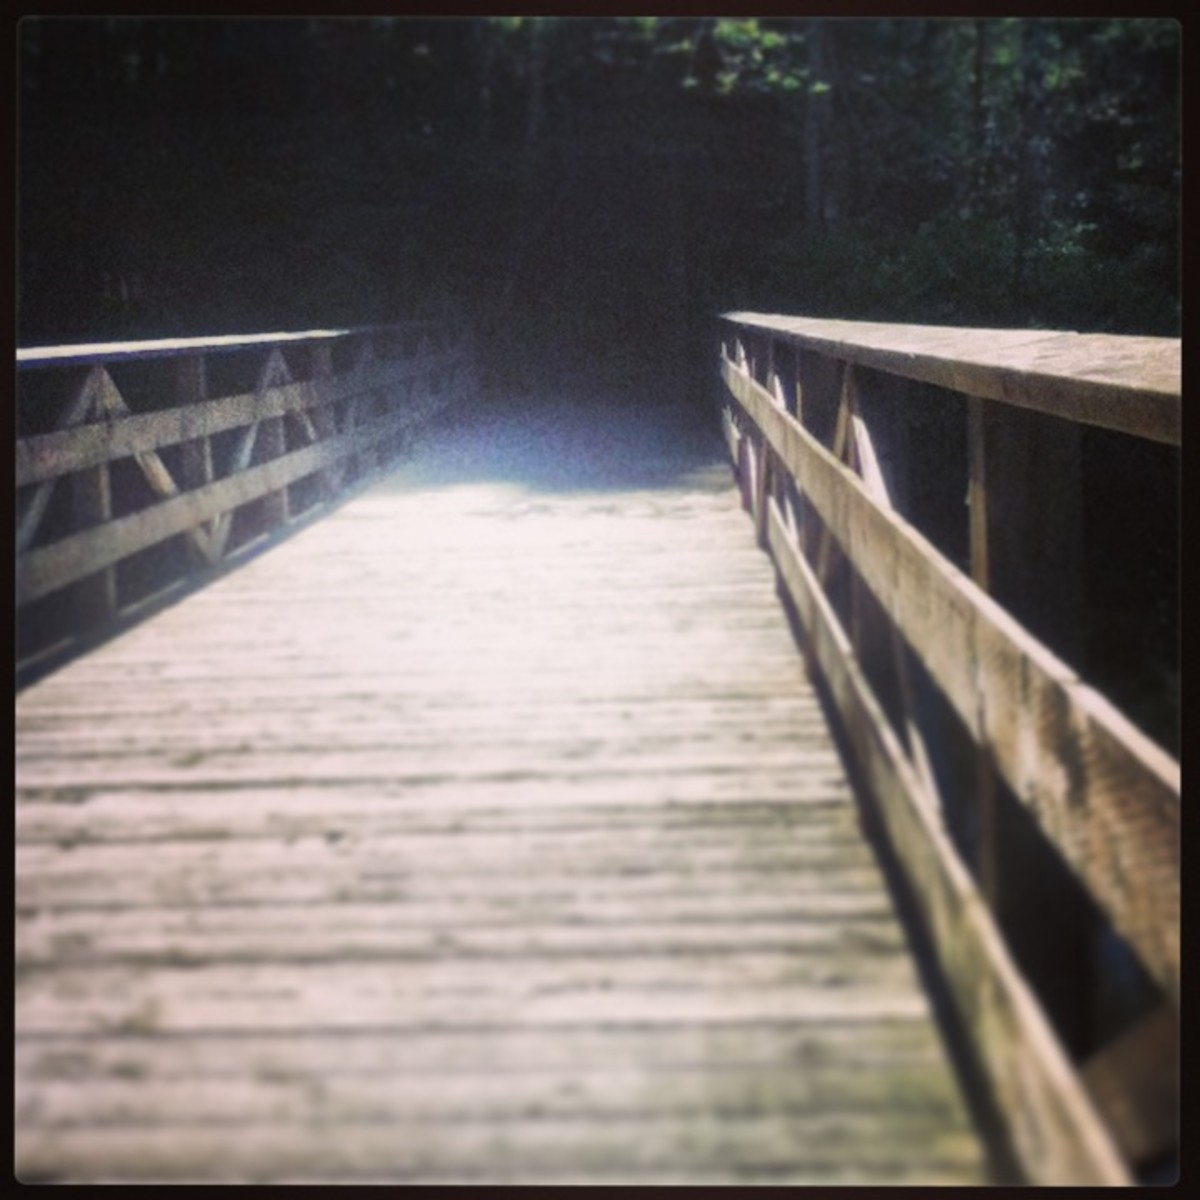 How do you mend fences and build bridges after a big fight with your husband or wife?